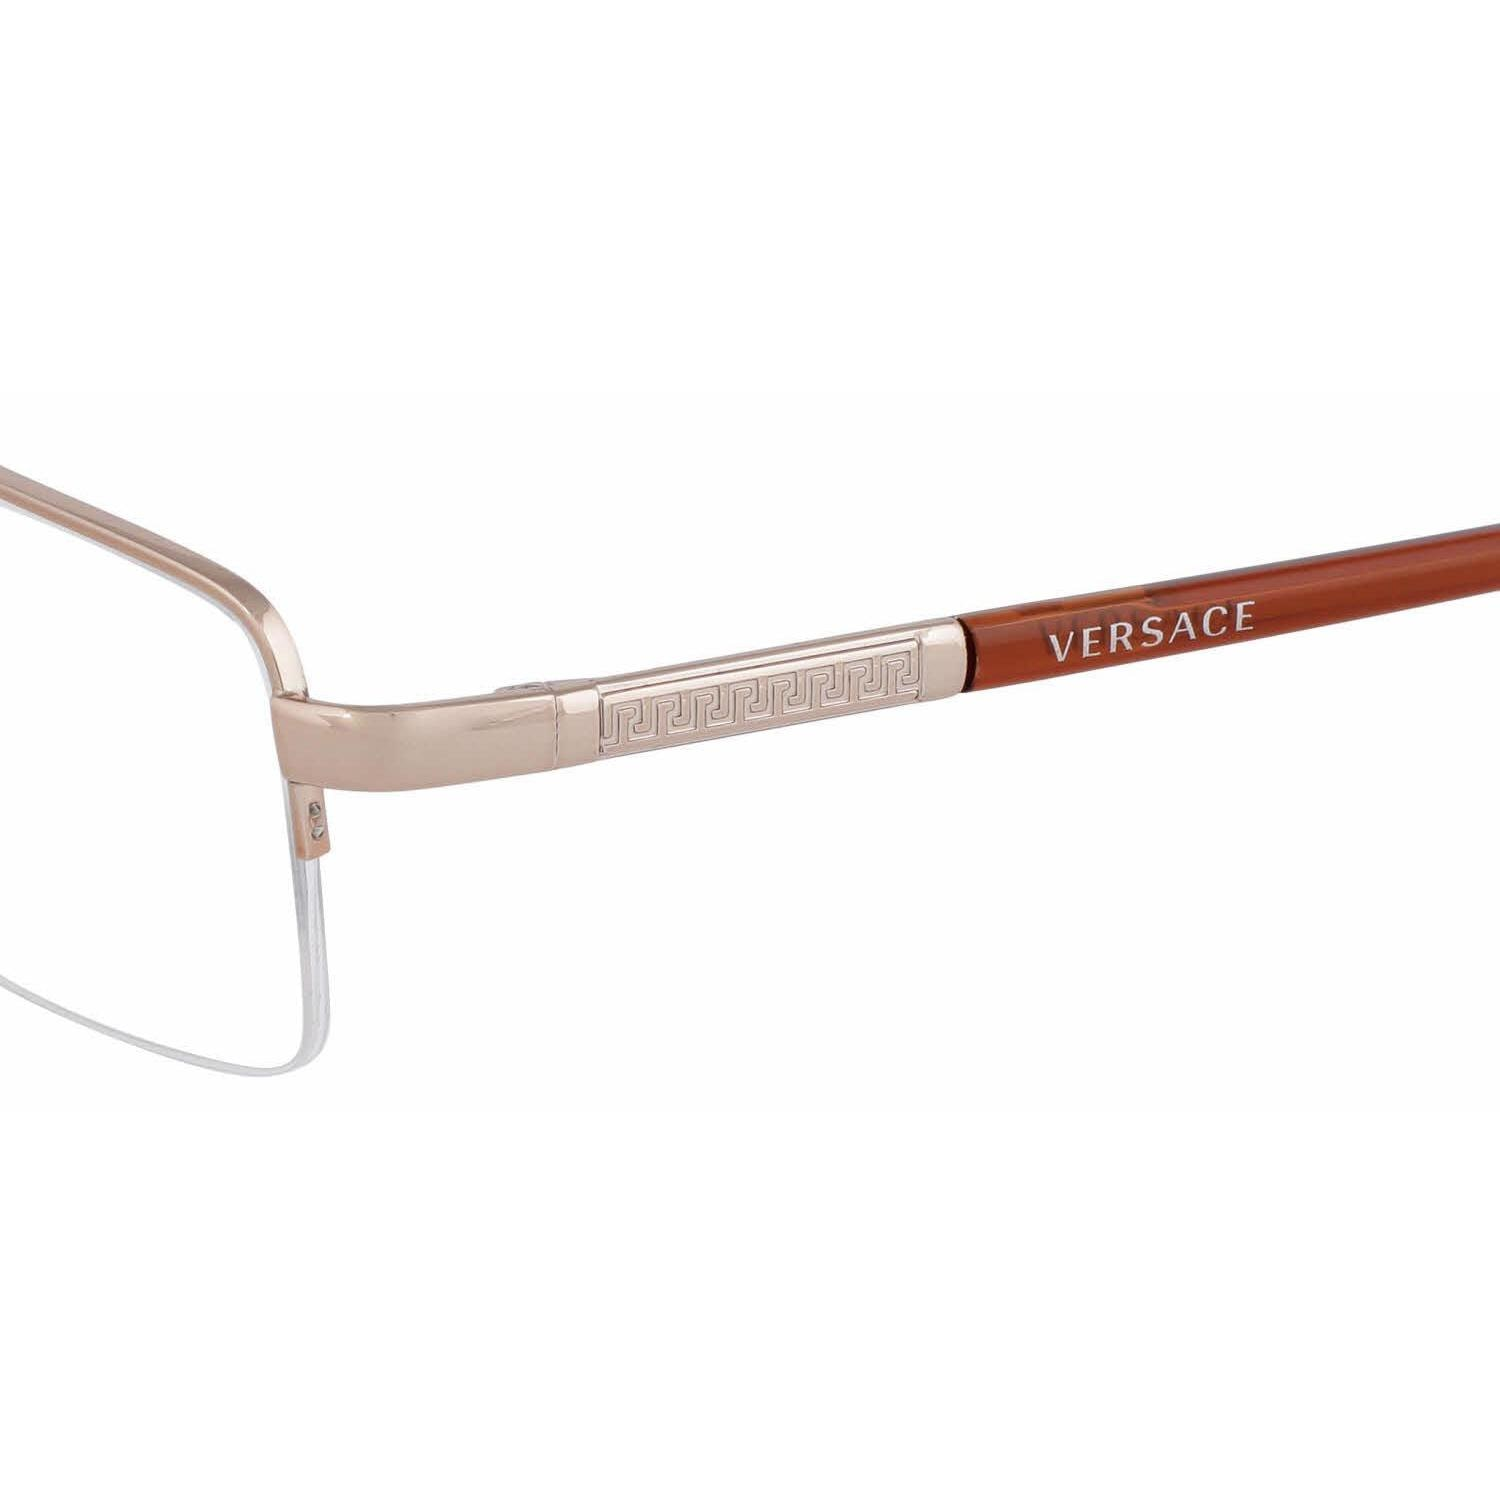 c33c03e1256c VERSACE Eyeglasses VE1066 1053 Brown 50MM - Walmart.com